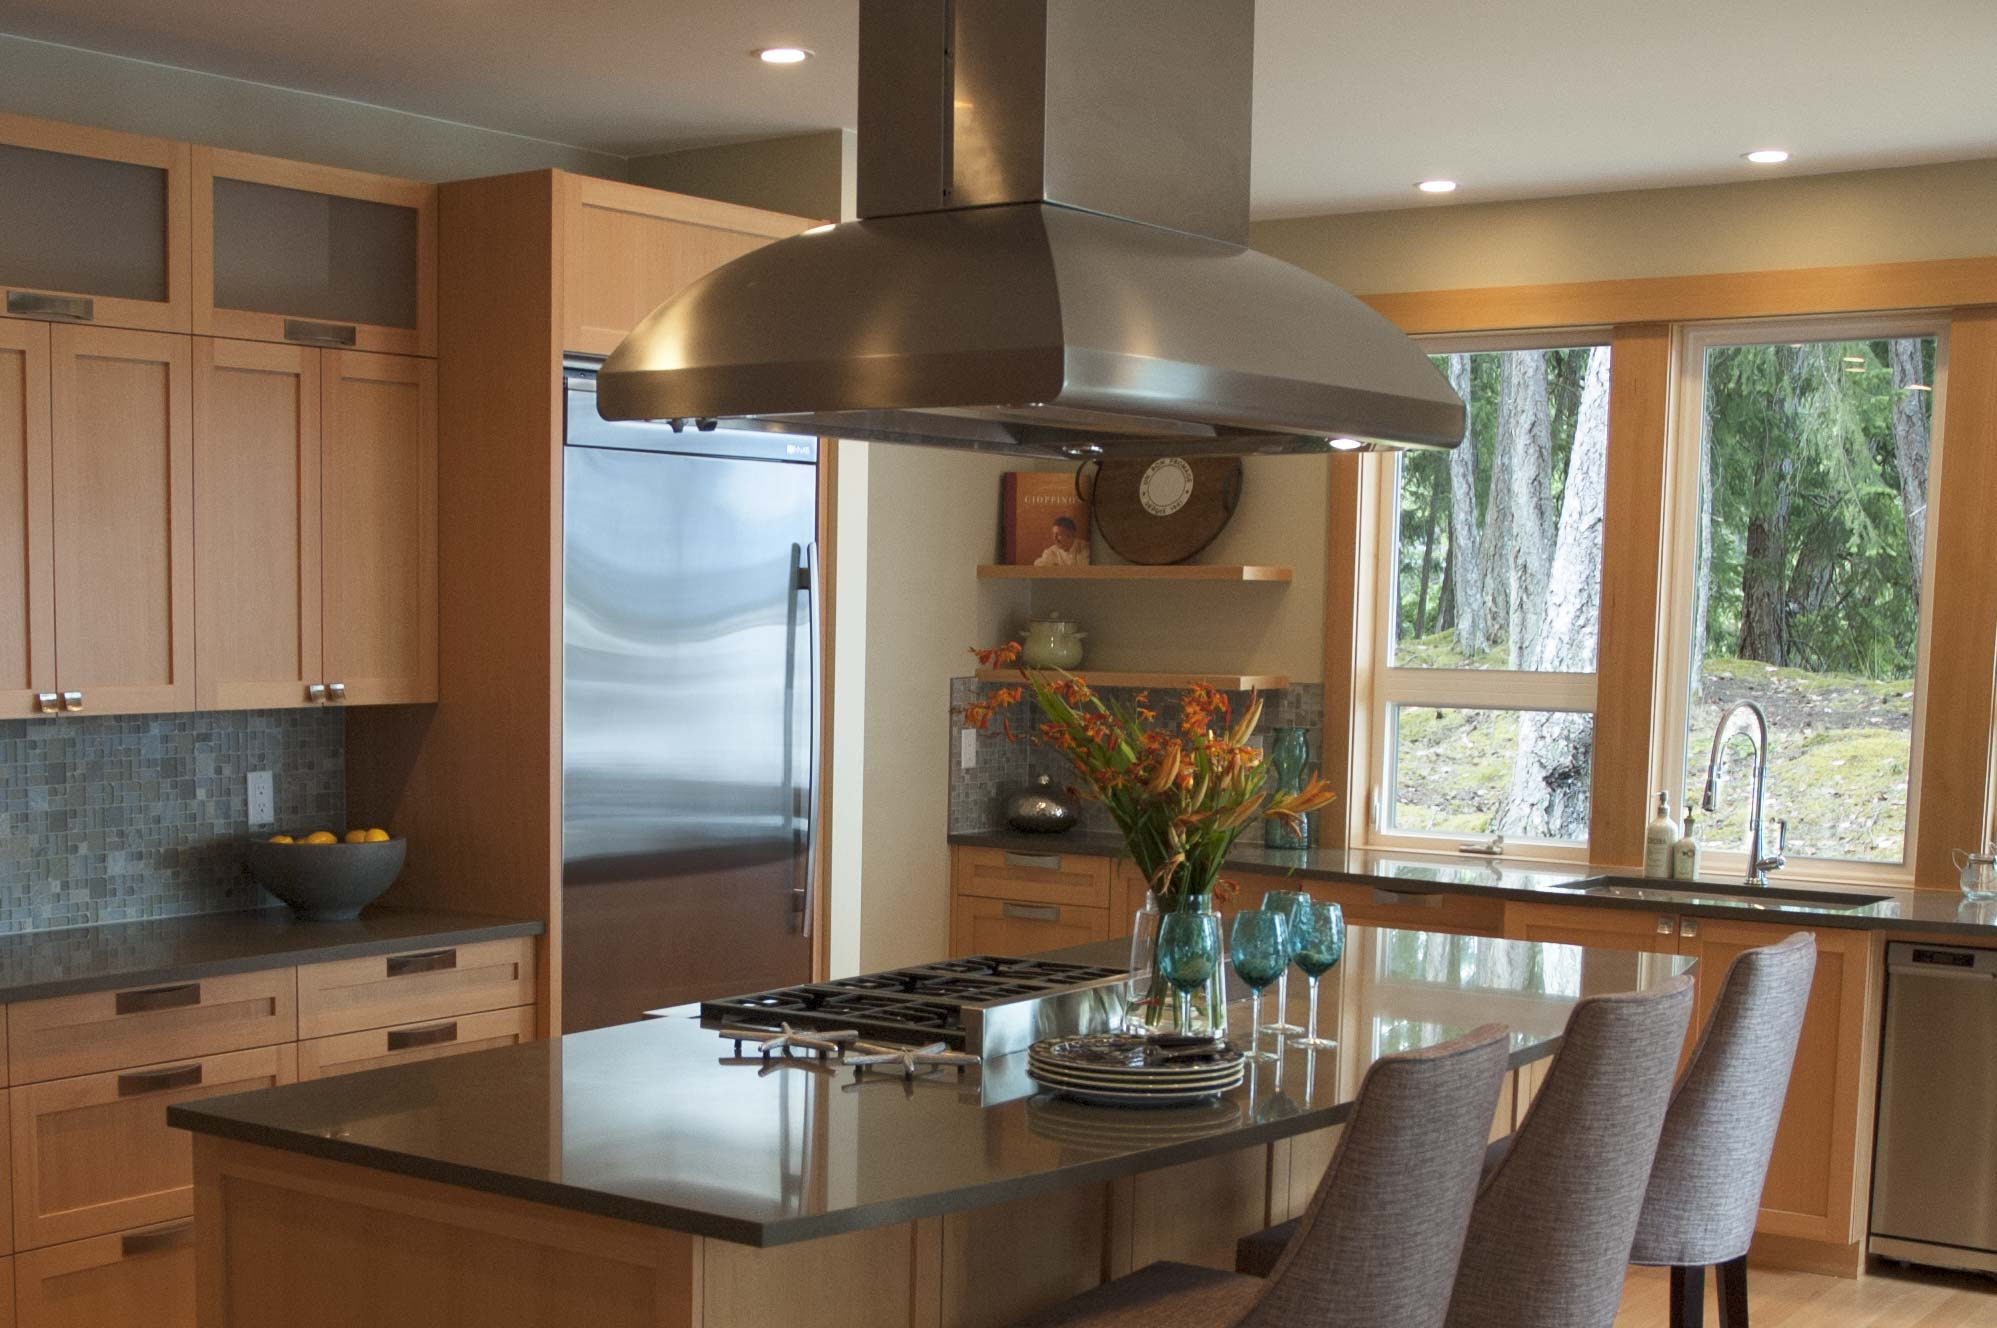 Kenwood Designs Custom Cabinetry and Millwork | 2014